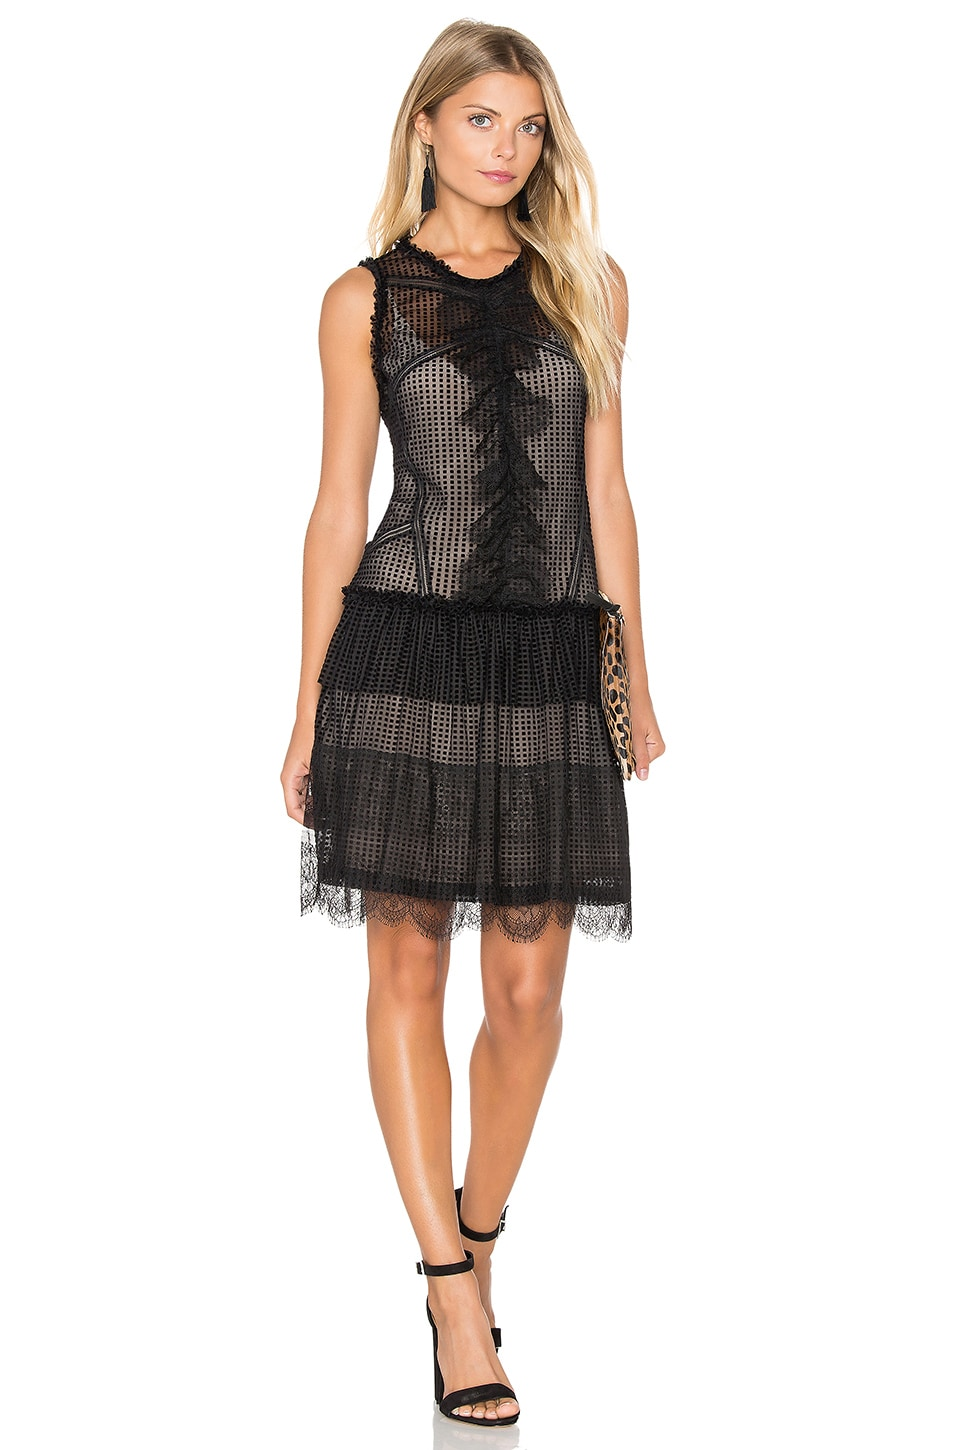 Marissa Webb Avery Burnout Dress in Black Combo